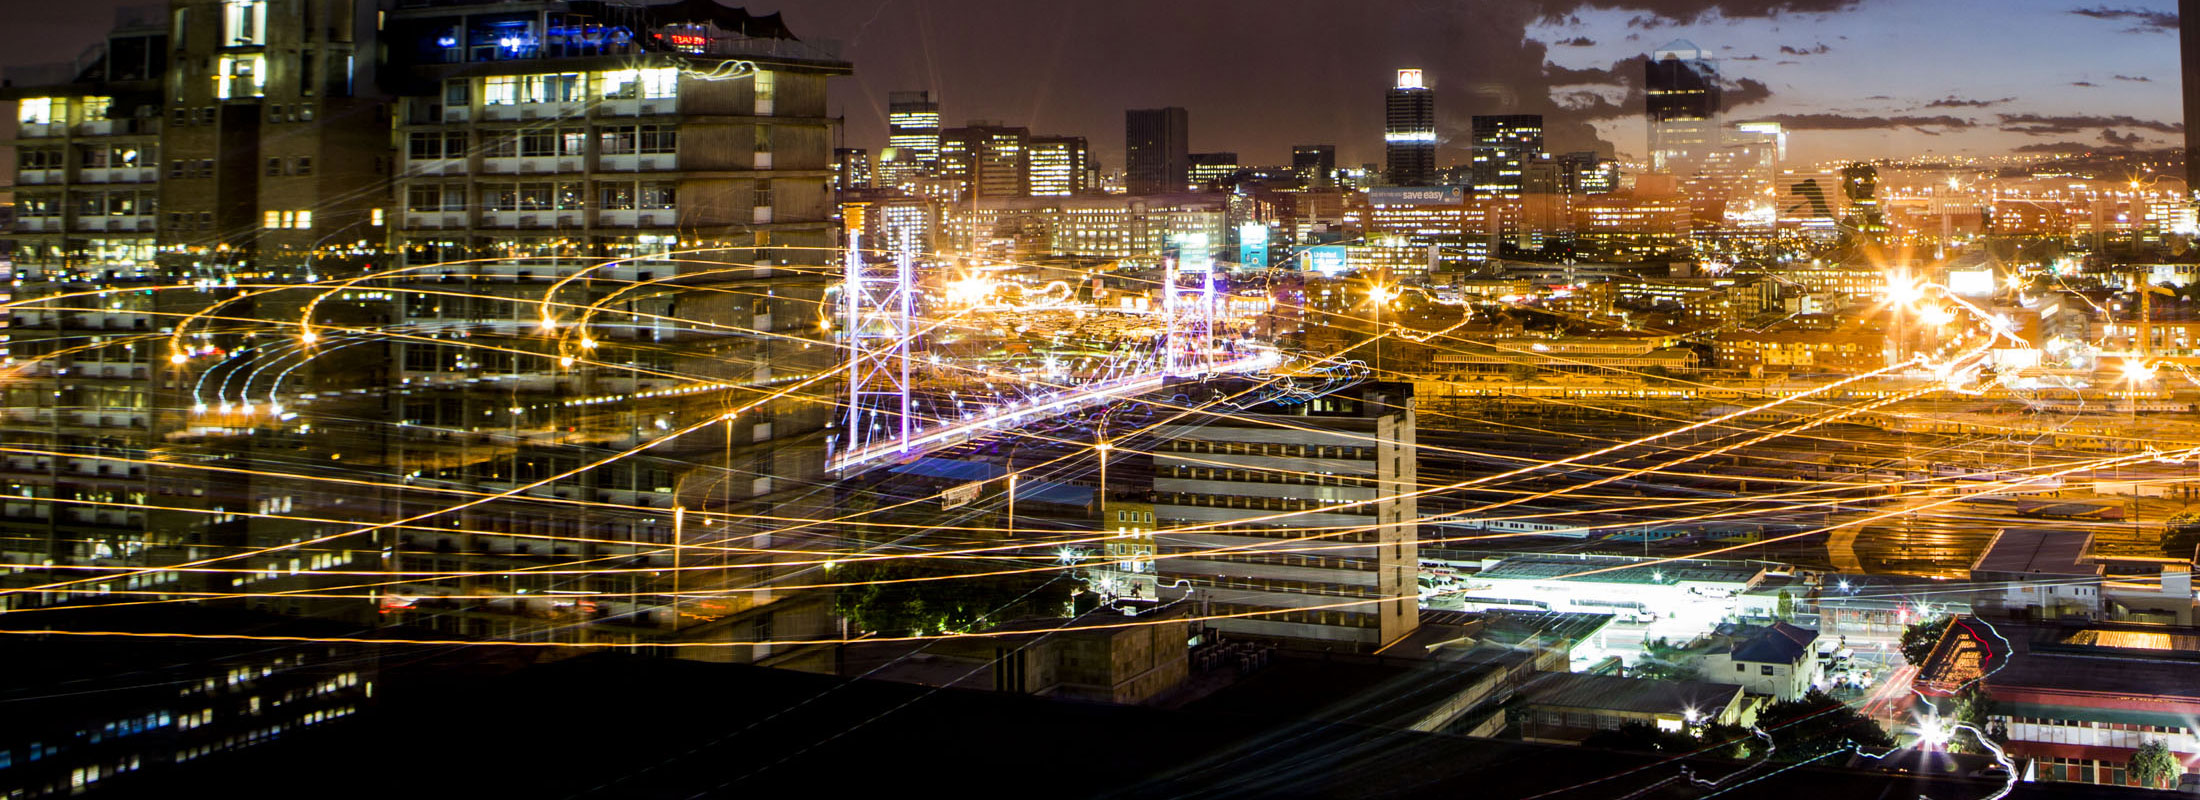 Johannesburg and its city lights at night